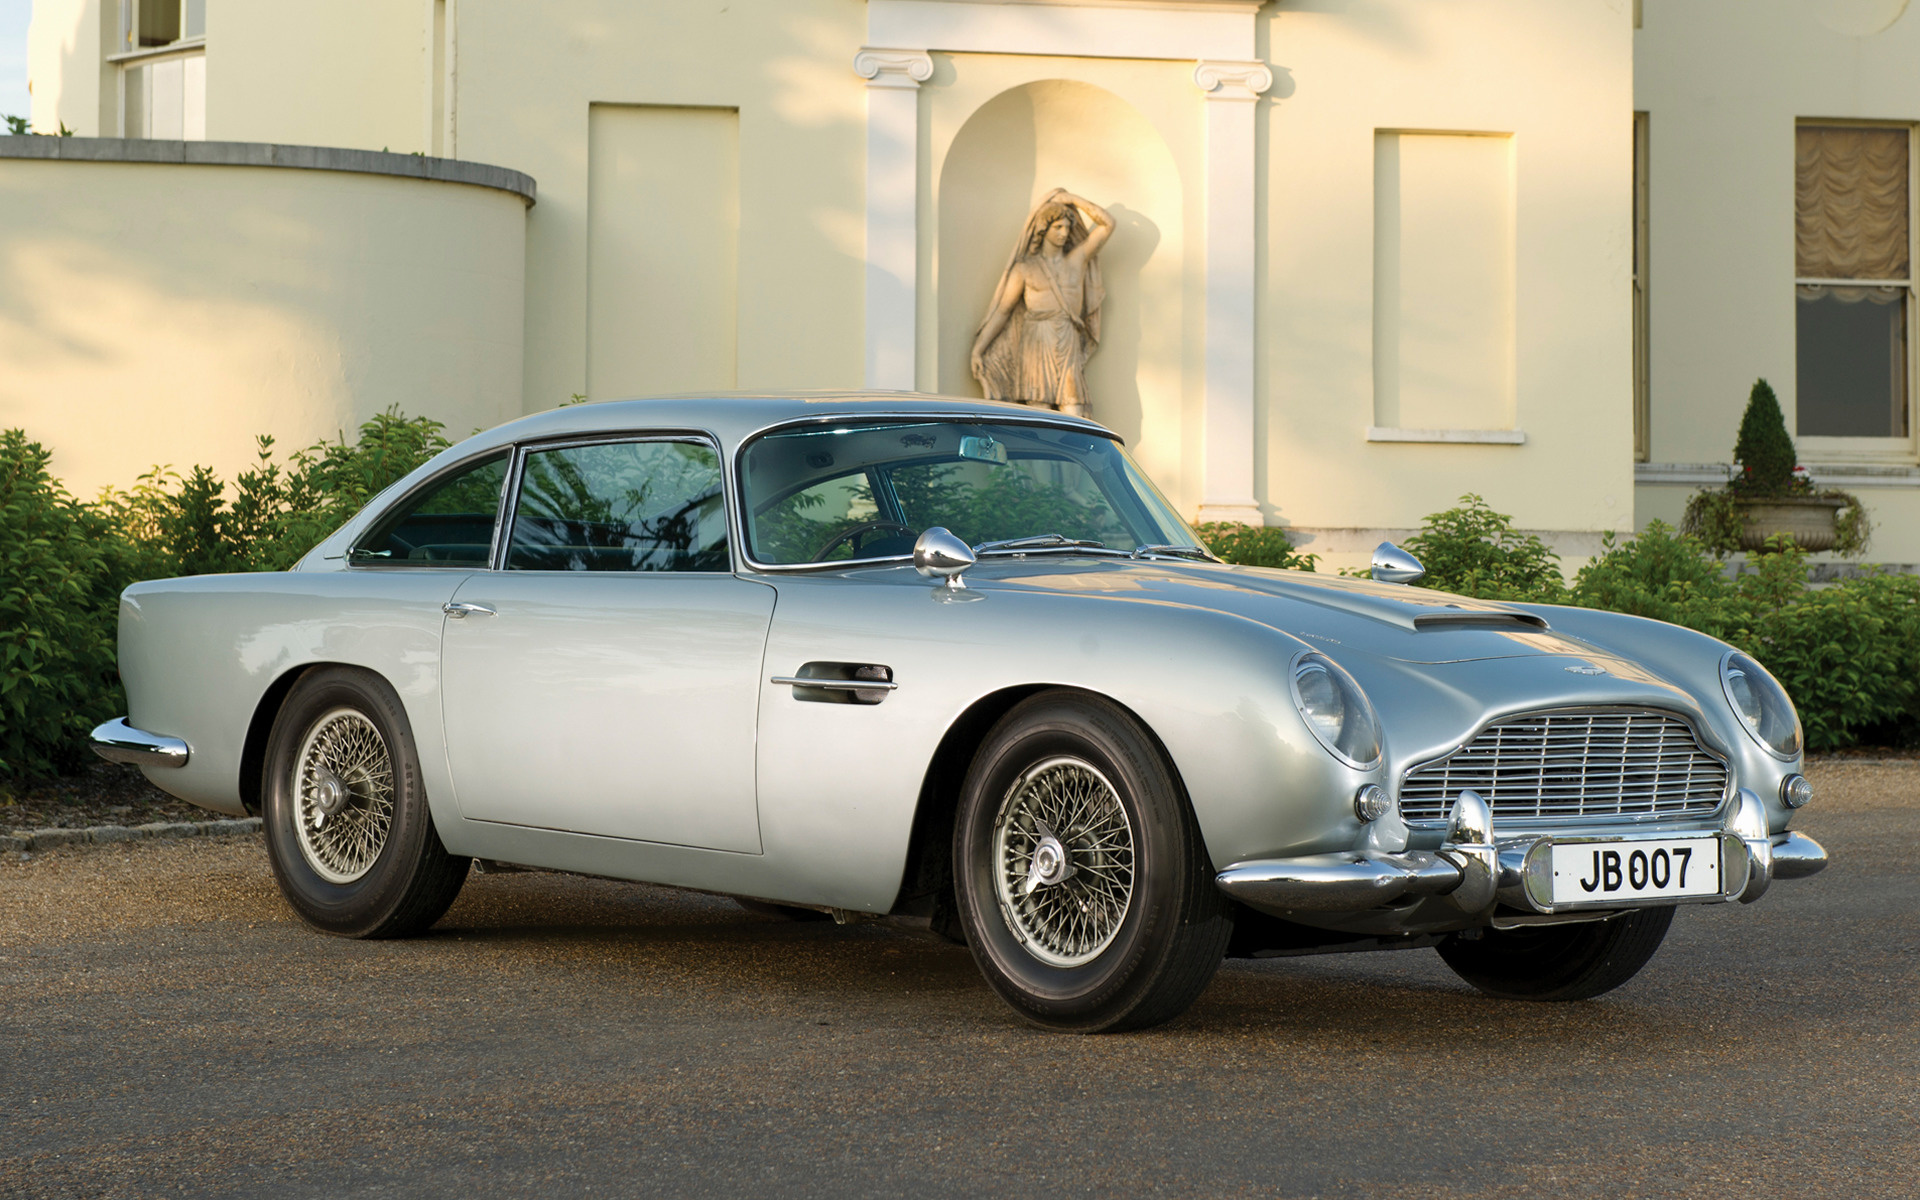 Aston Martin Db5 James Bond Edition 1964 Wallpapers And